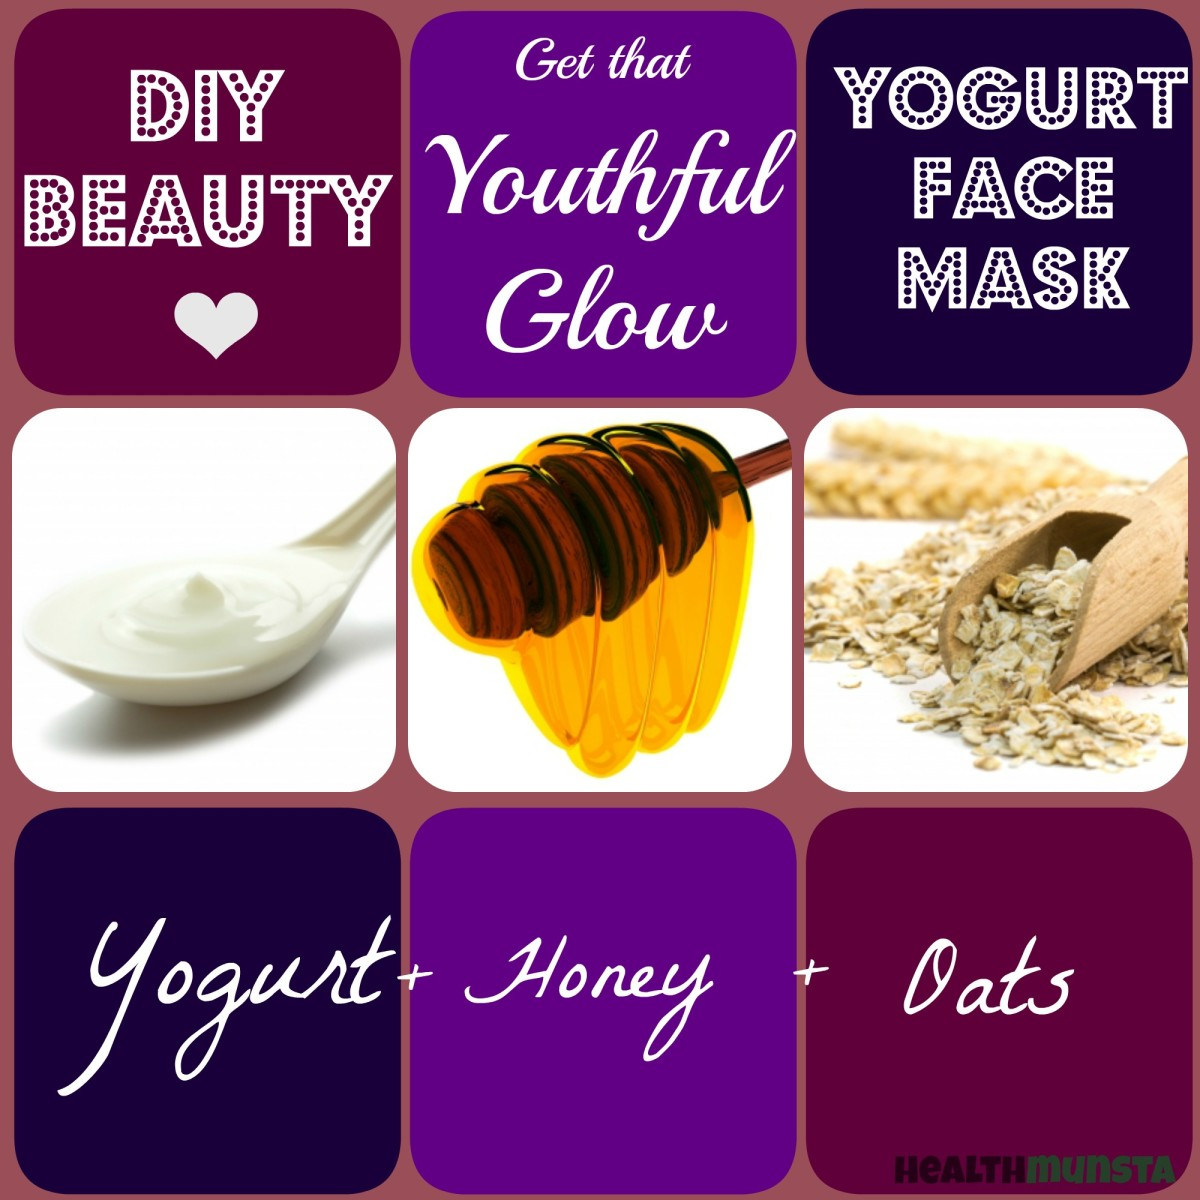 Got fine lines, wrinkles or dull skin that looks years older than you are? Yogurt + Honey + Oats, this is your recipe for a rejuvenating face mask!